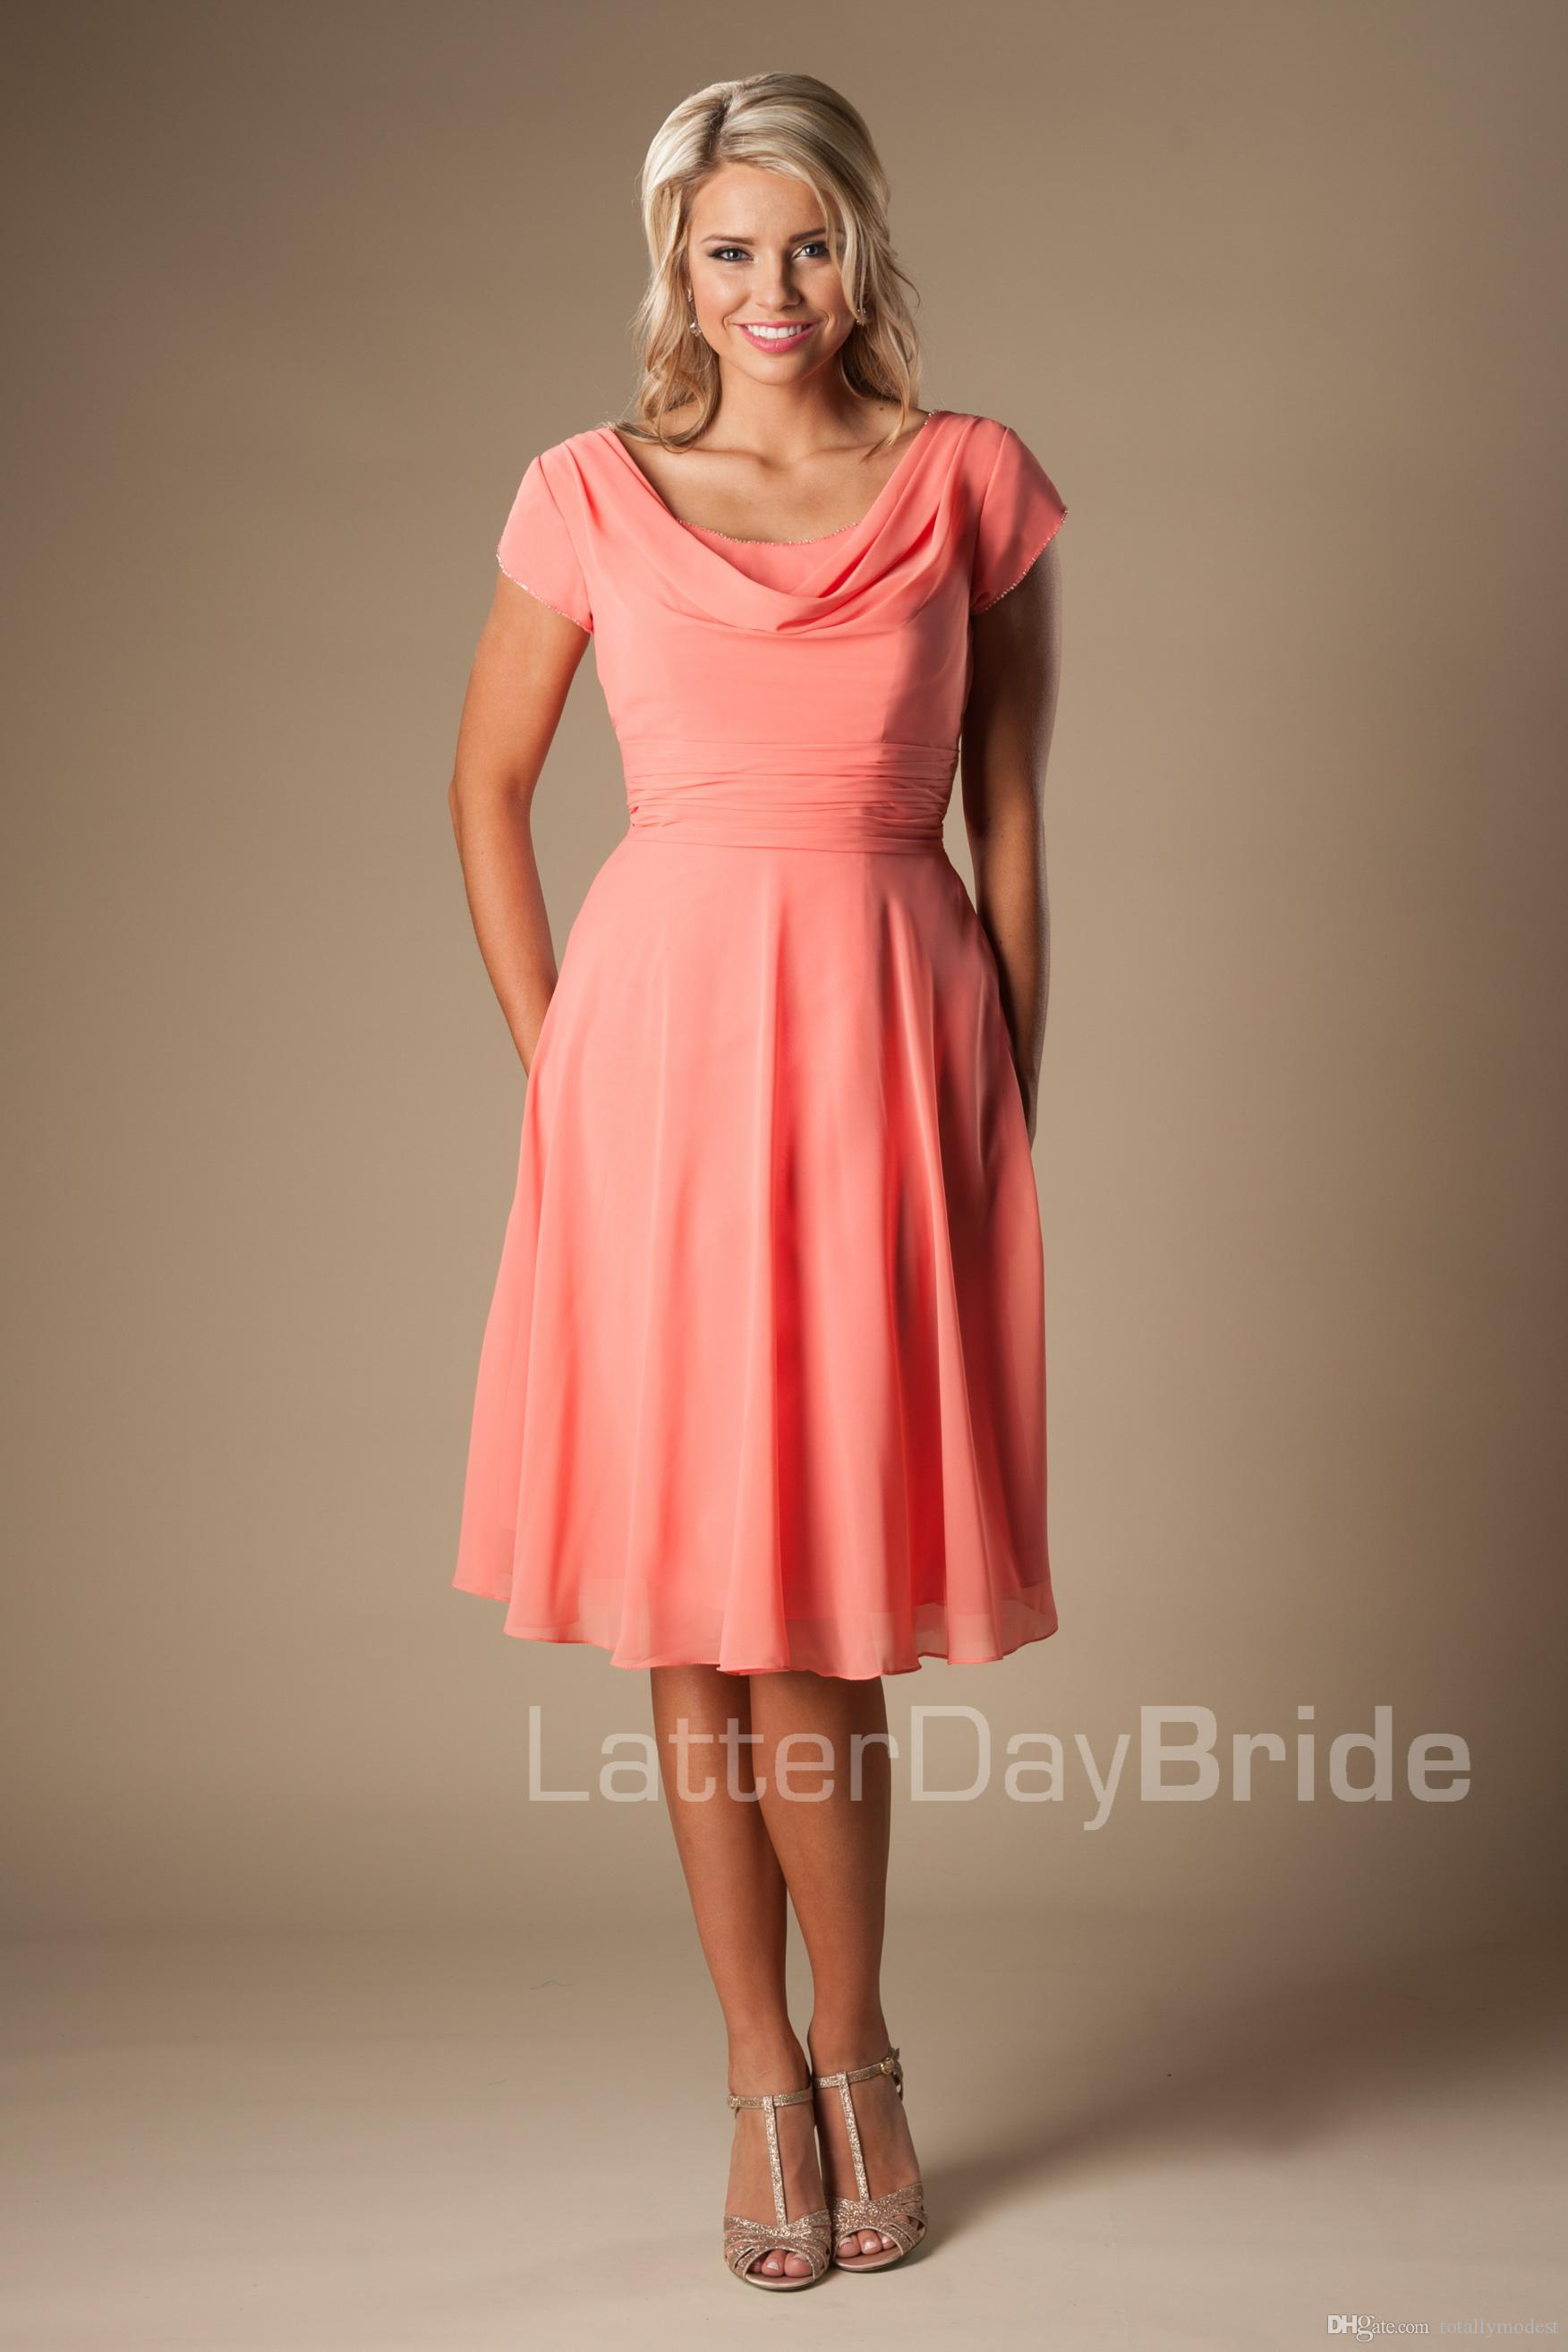 Coral chiffon short modest bridesmaid dresses with short sleeves a coral chiffon short modest bridesmaid dresses with short sleeves a line informal maids of honor dresses cap sleeves wedding party dresses rose bridesmaid ombrellifo Image collections